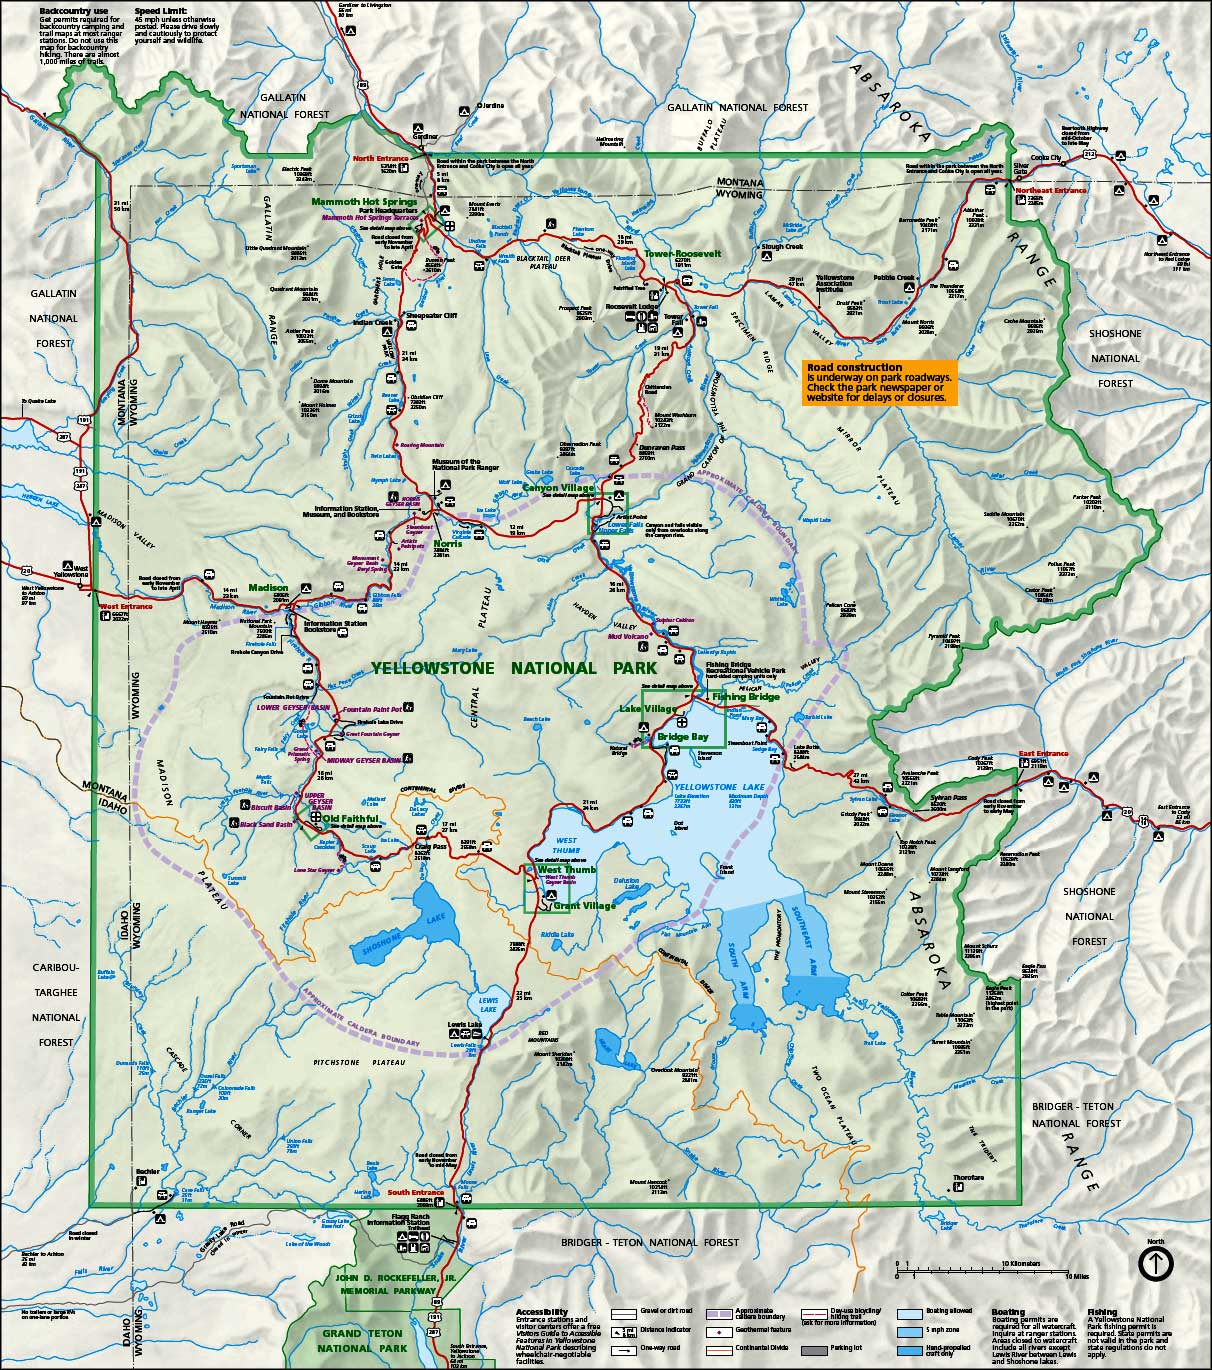 Yellowstone Map - TravelsFinders.Com ® on u.s. route 6 map, yellowstone fire of 1988, yellowstone driving map, yellowstone usa map, yellowstone maps and travel guides, yellowstone park activities, yellowstone river map, national park to park highway map, yellowstone topo map, plateaus of yellowstone national park, yellowstone fishing map, philadelphia and lancaster turnpike map, yellowstone volcano damage map, detailed yellowstone map, waterfalls in yellowstone national park, yellowstone elevation maps, yellowstone on us map, geothermal areas of yellowstone, grand canyon of the yellowstone, yellowstone destruction zone, small mammals of yellowstone national park, yellowstone canyon map, yellowstone grand teton national park, yellowstone earthquake, yellowstone national park, grand canyon national park map, yellowstone wyoming map, animals of yellowstone, fishes of yellowstone national park, angling in yellowstone national park,